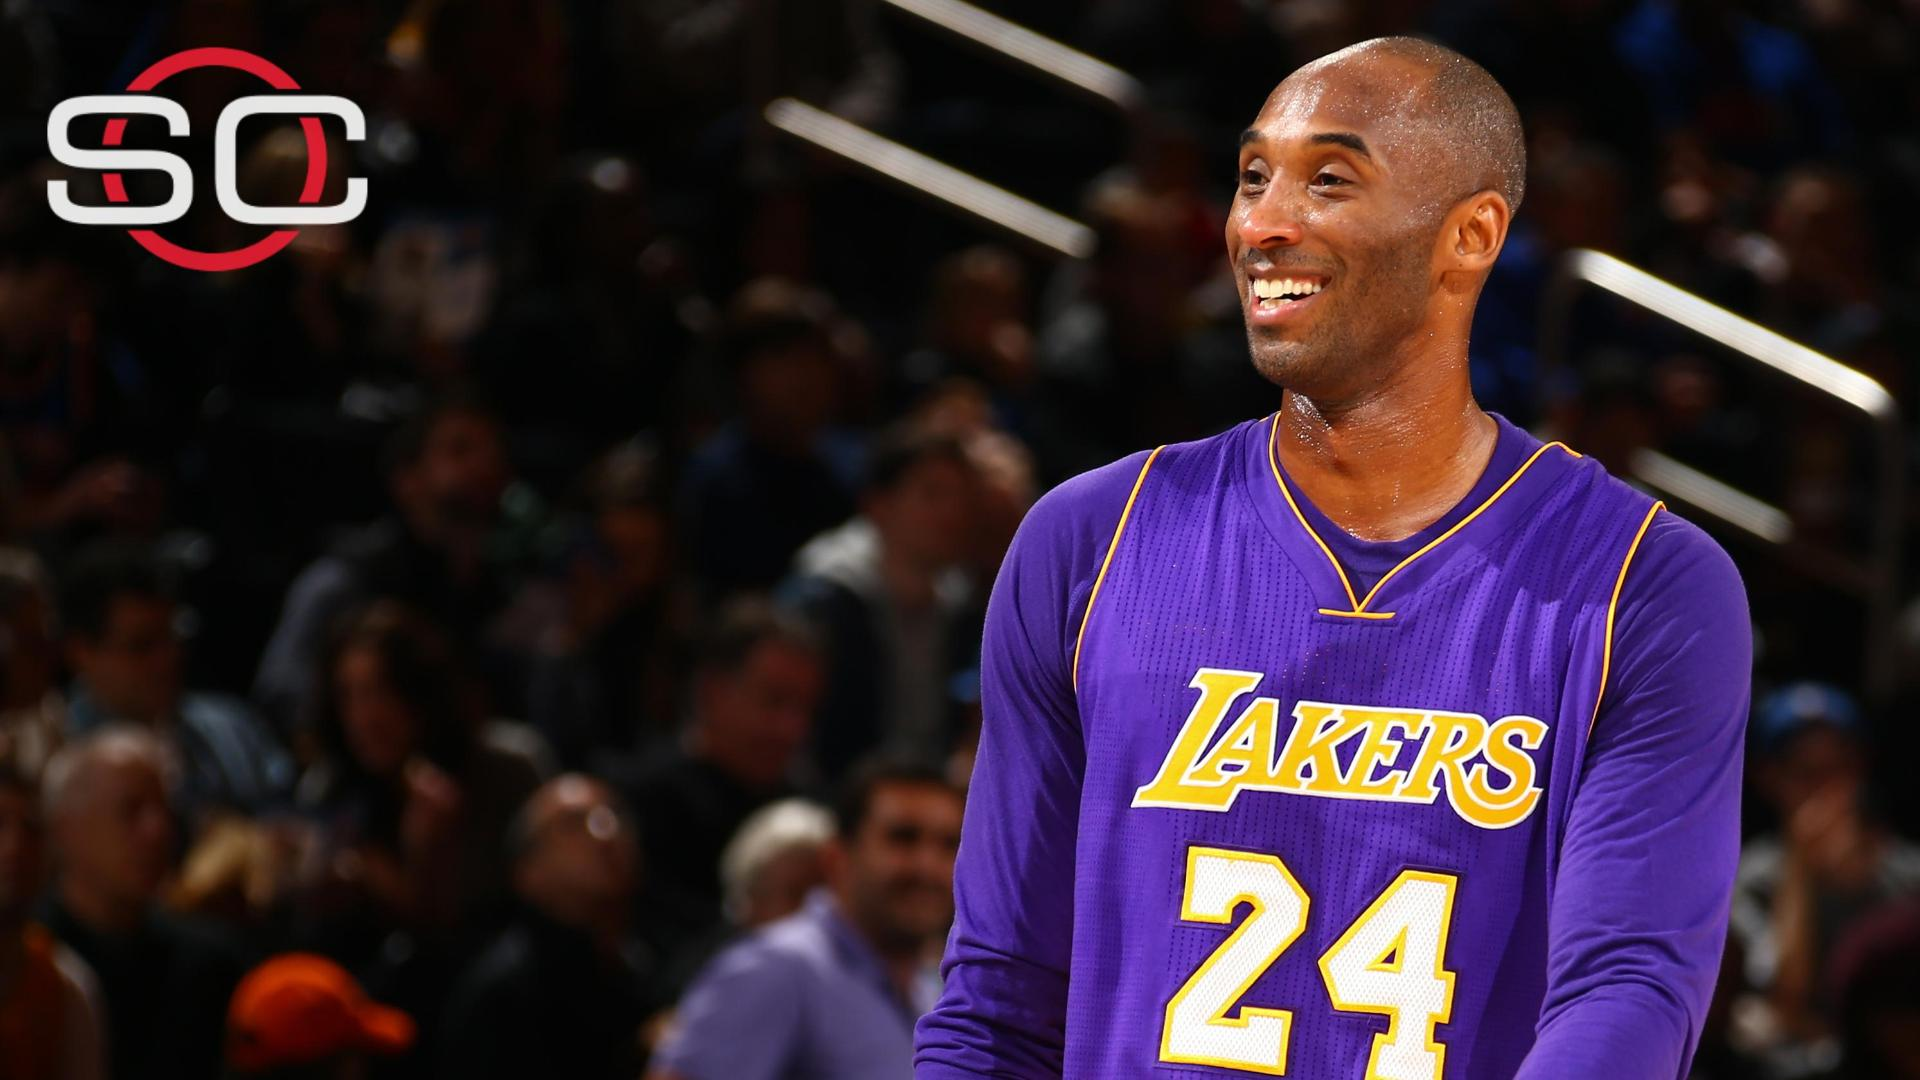 Kobe announces he will retire after this season